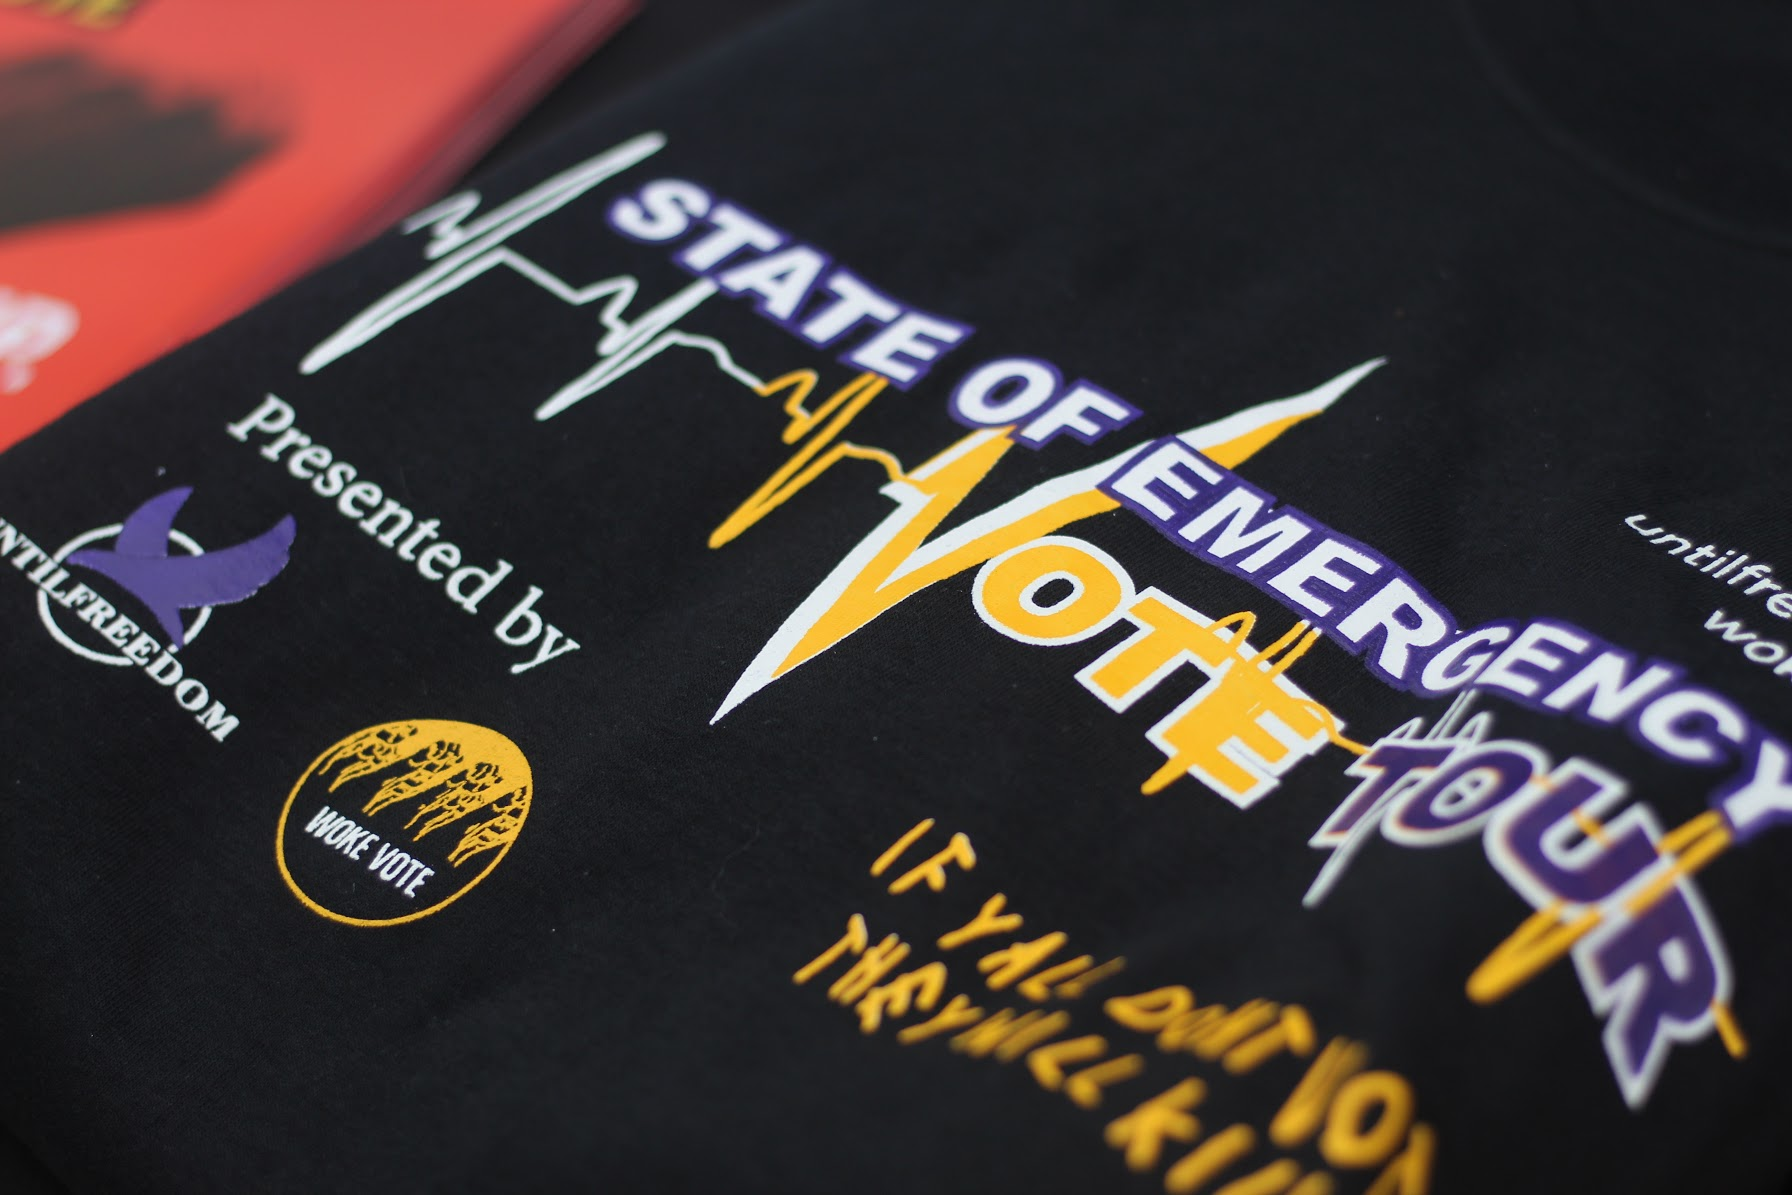 State of Emergency Vote Tour